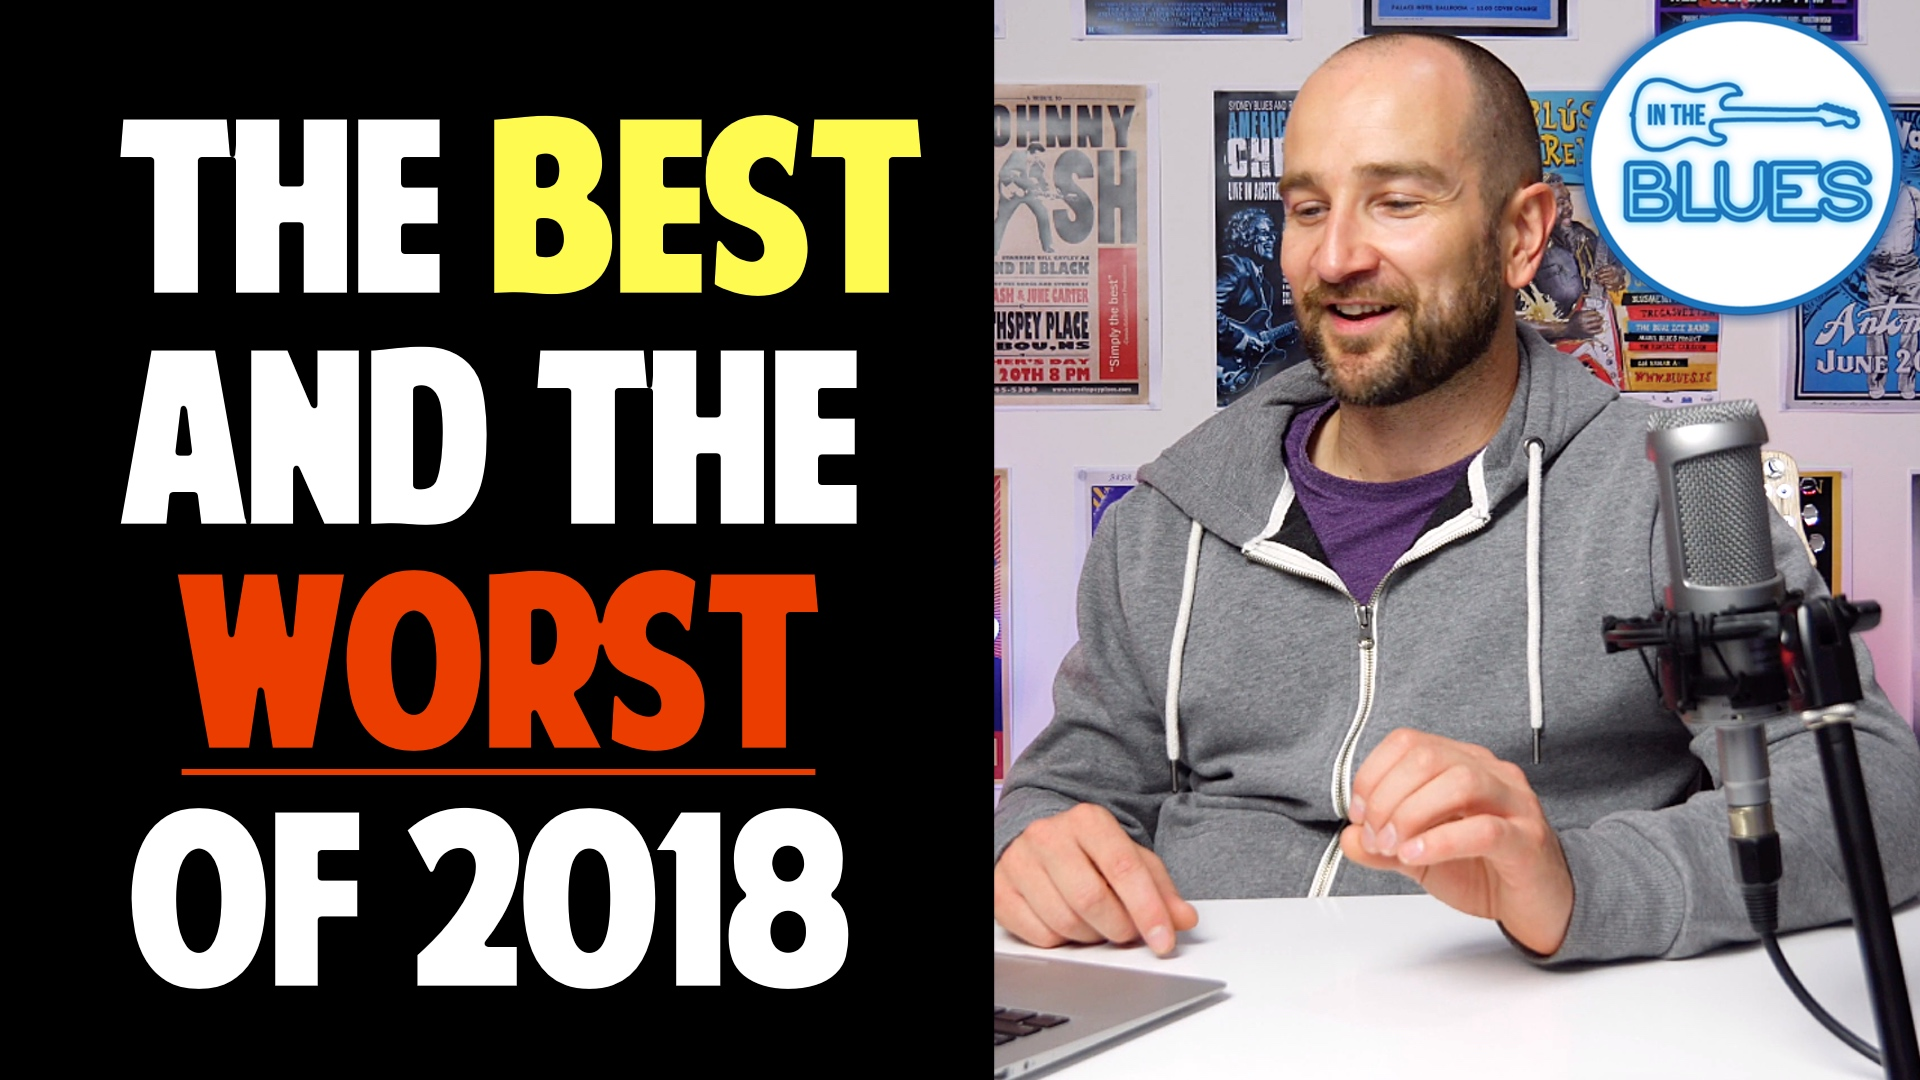 Best and the Worst Guitar Gear of 2018